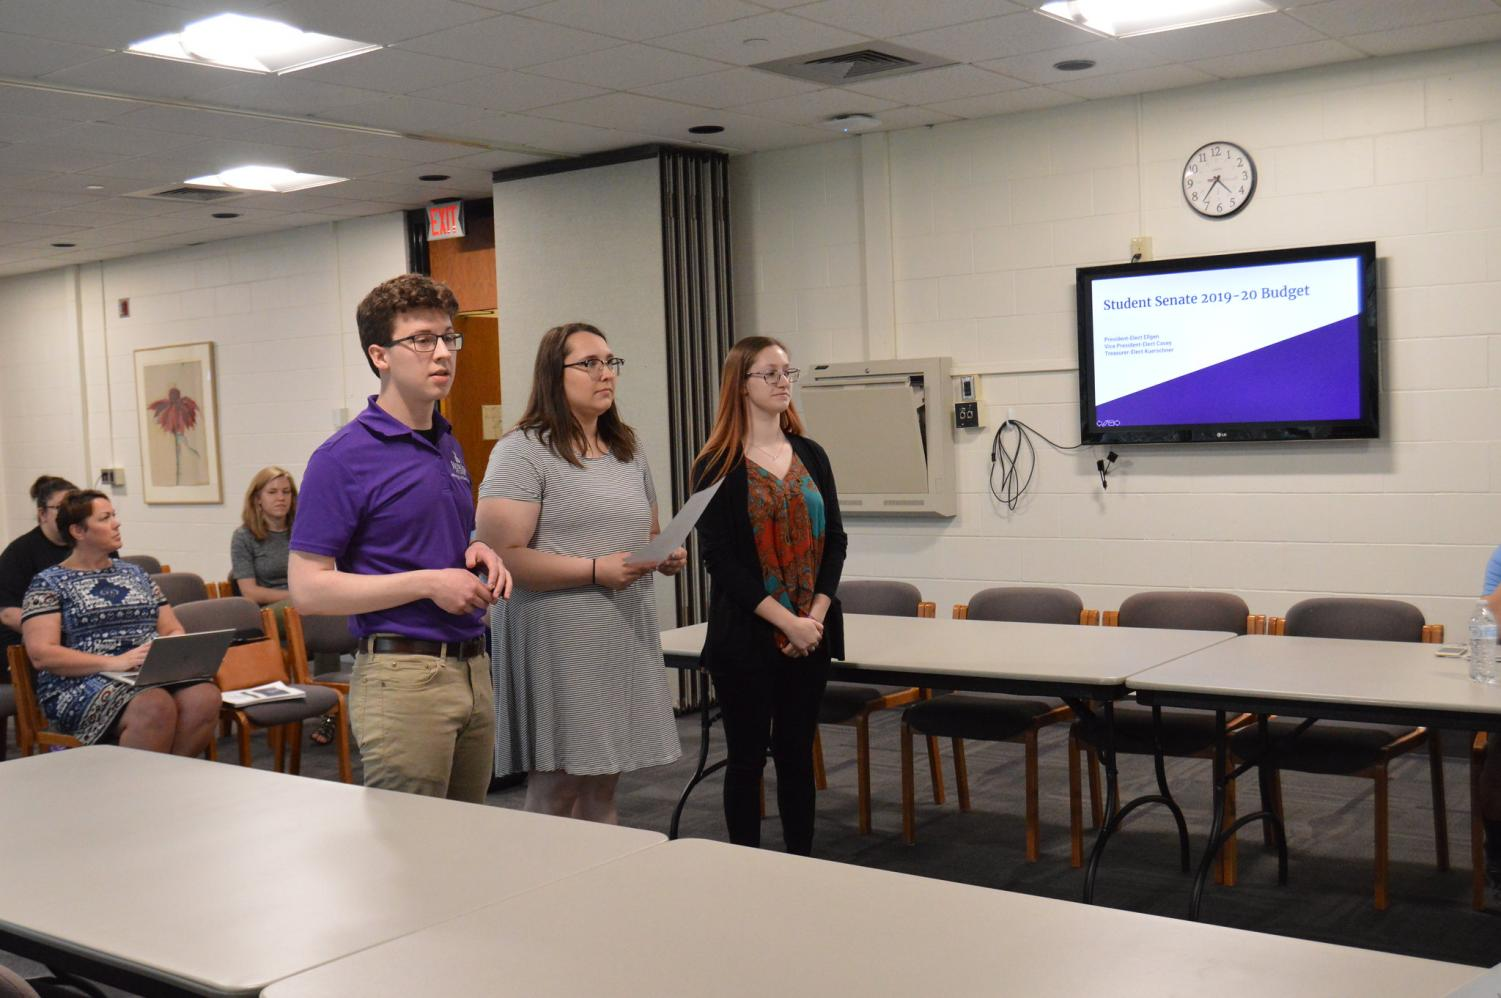 Newly elected President Ben Ellgen, Vice President Lizzie Casey and Treasurer Clara Kuerschner presented the Student Senate Budget for the 2019-20 school year. The proposal included raising executive salaries and cutting various other budgets.